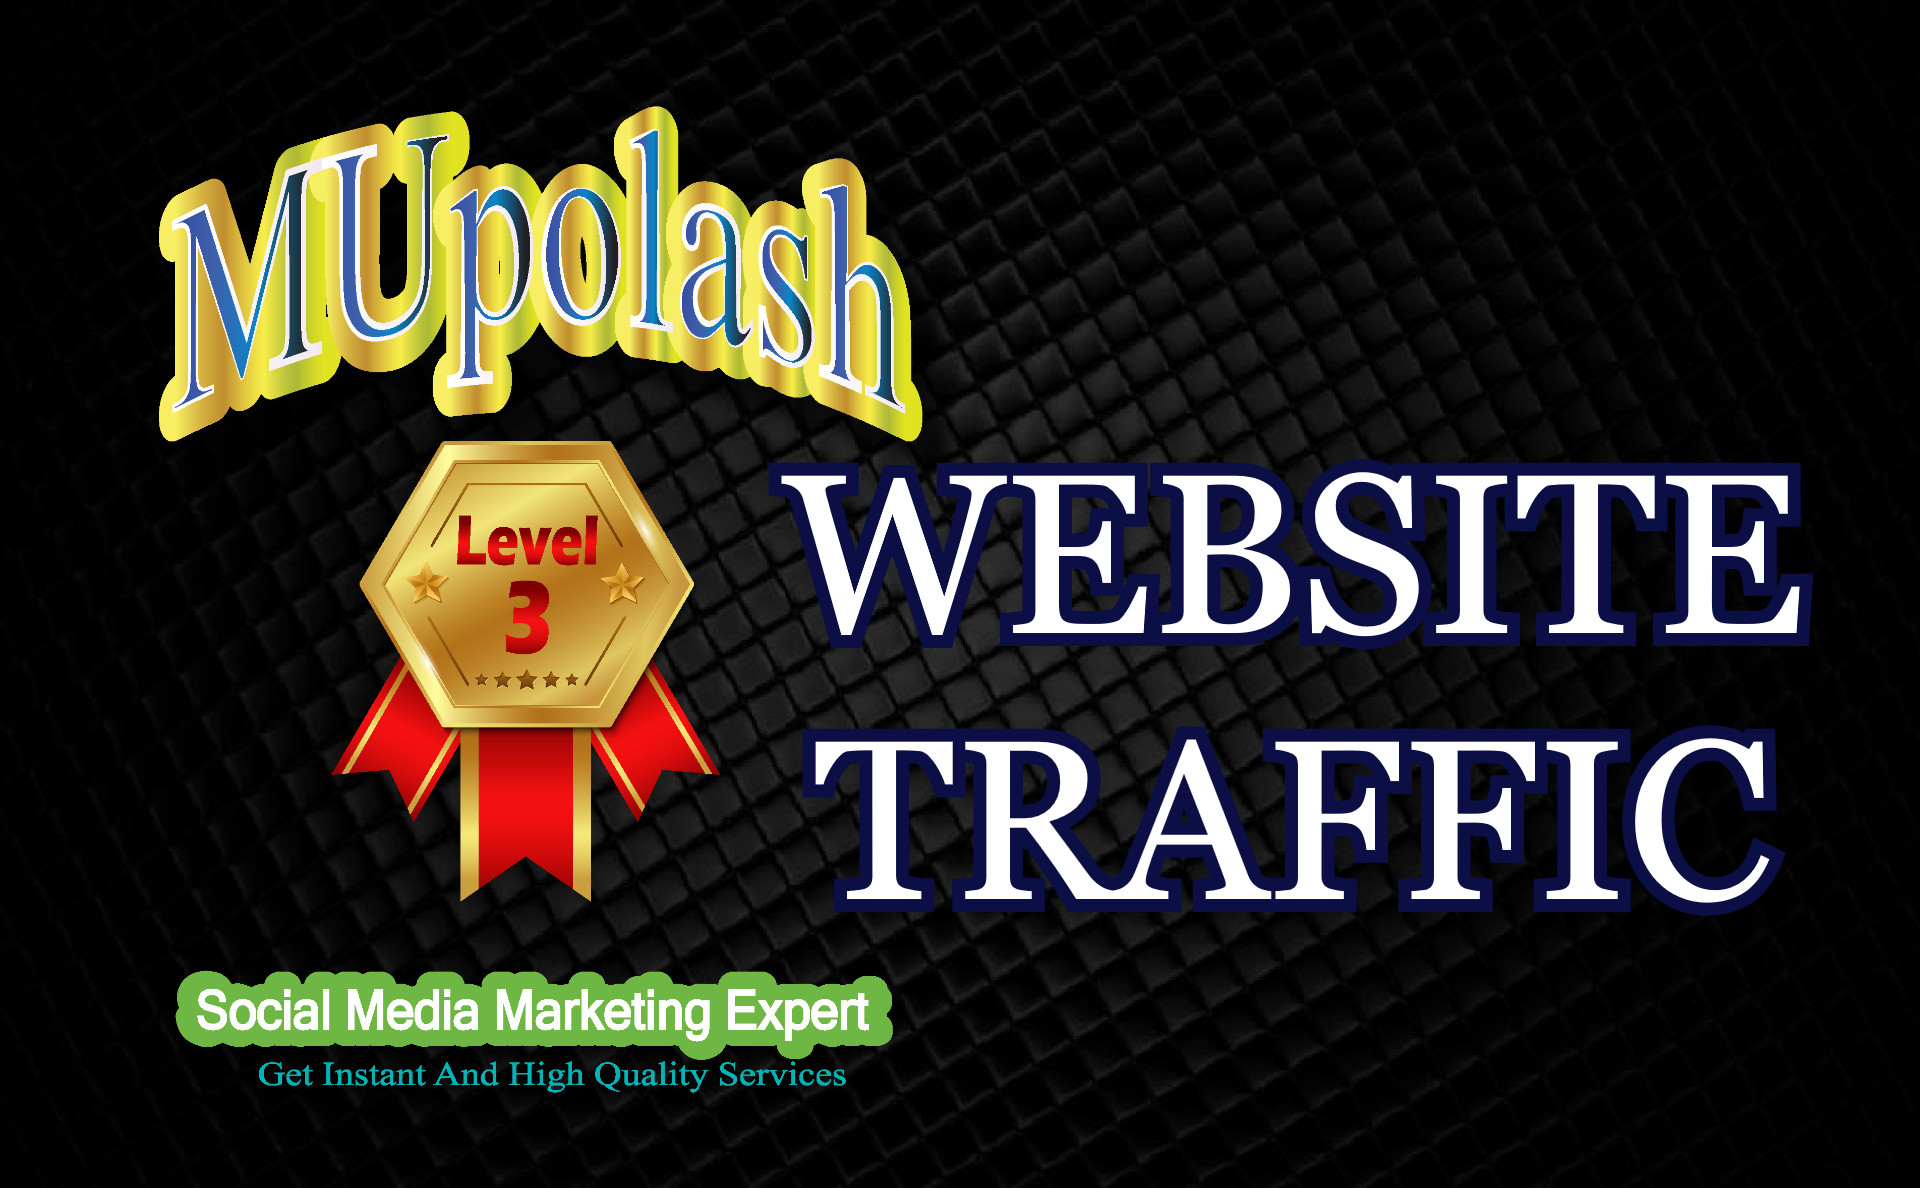 13000+ Real Human websites Traffic/visitors instantly